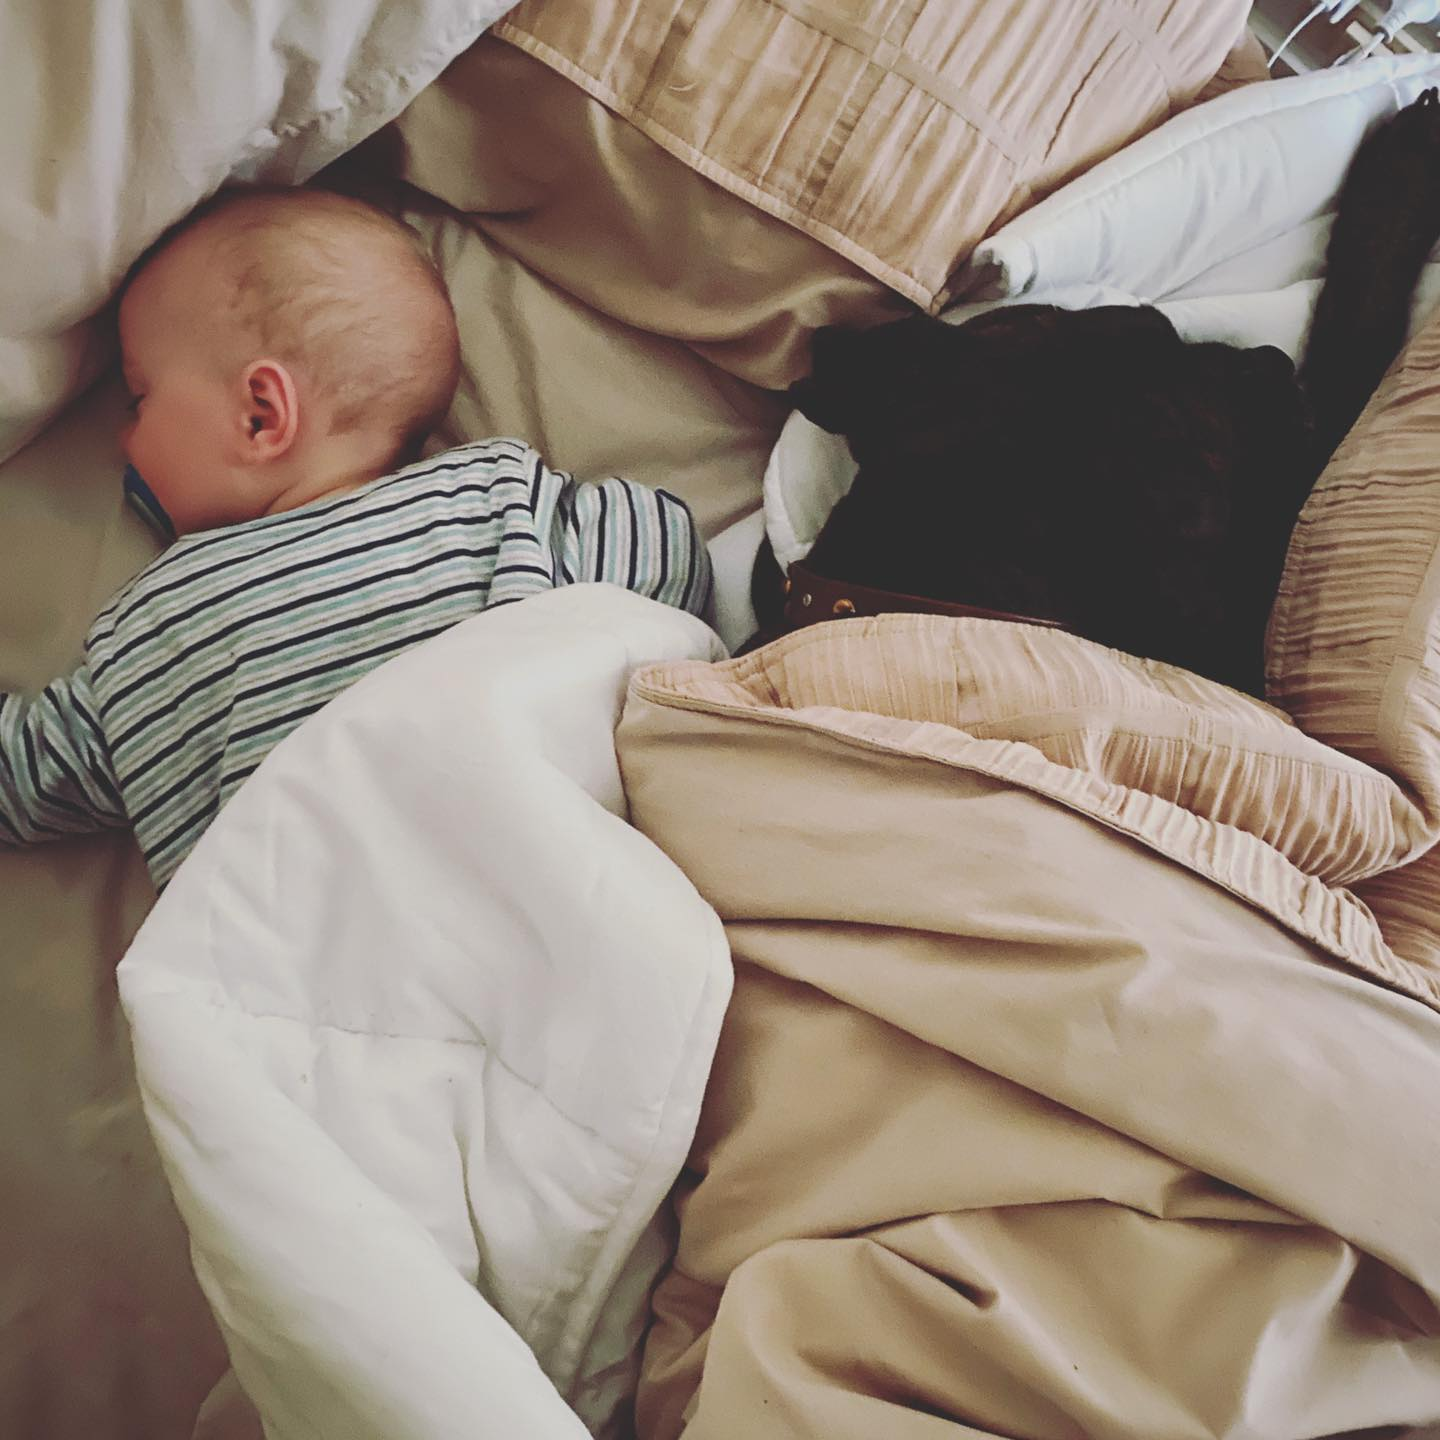 a dog and baby sleep side by side in bed asleep